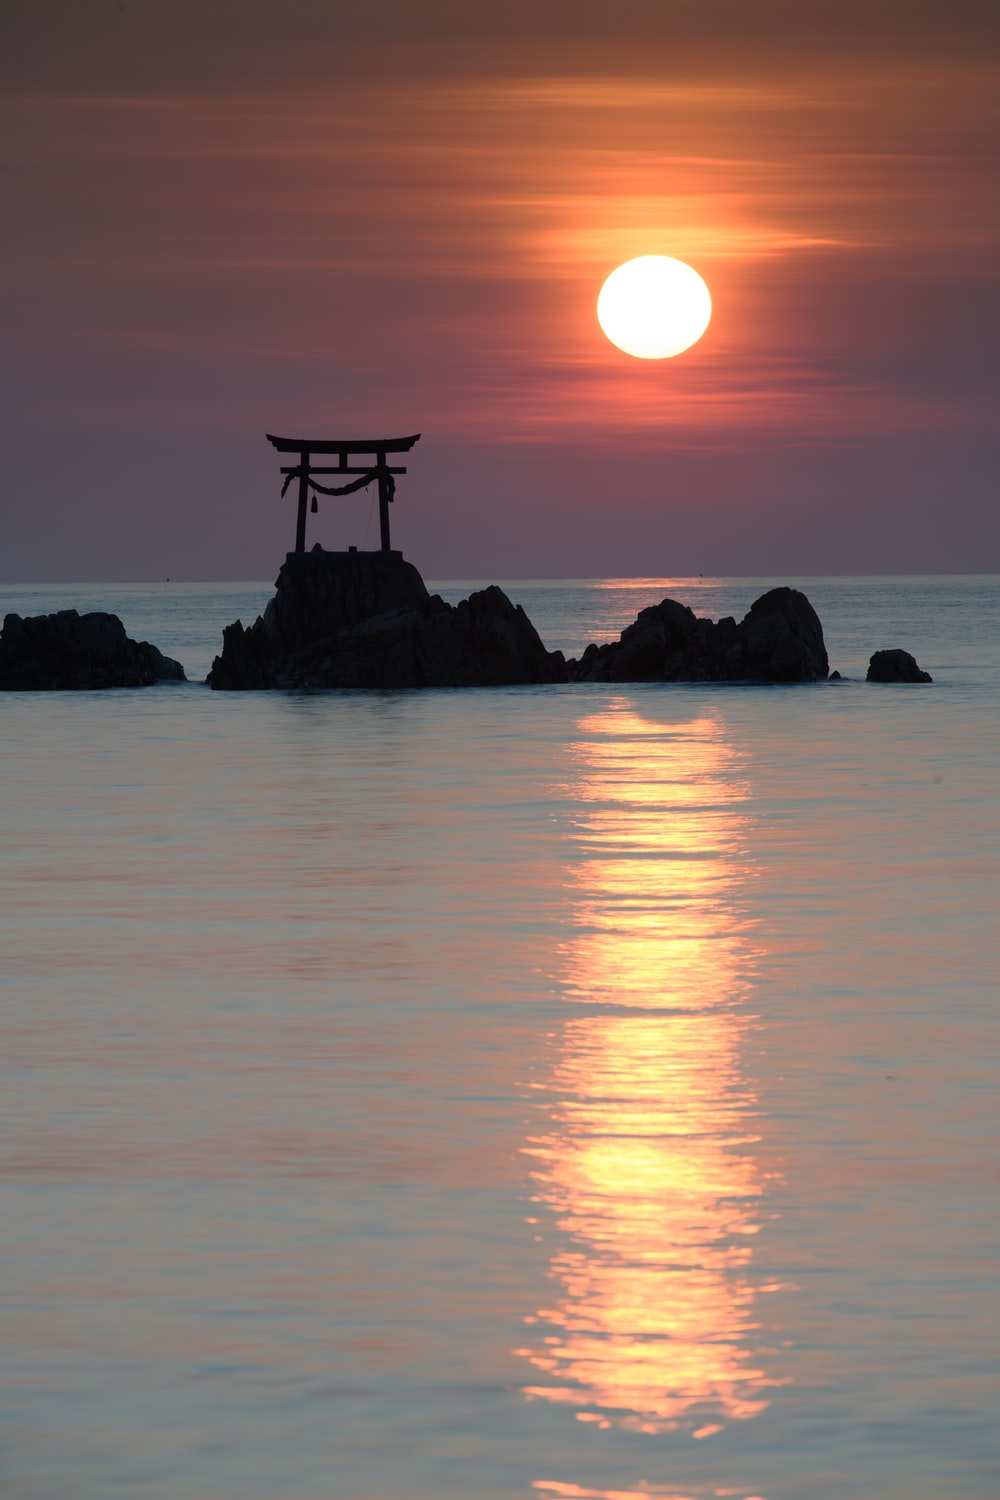 Itsukushima Shrine in middle of body of water